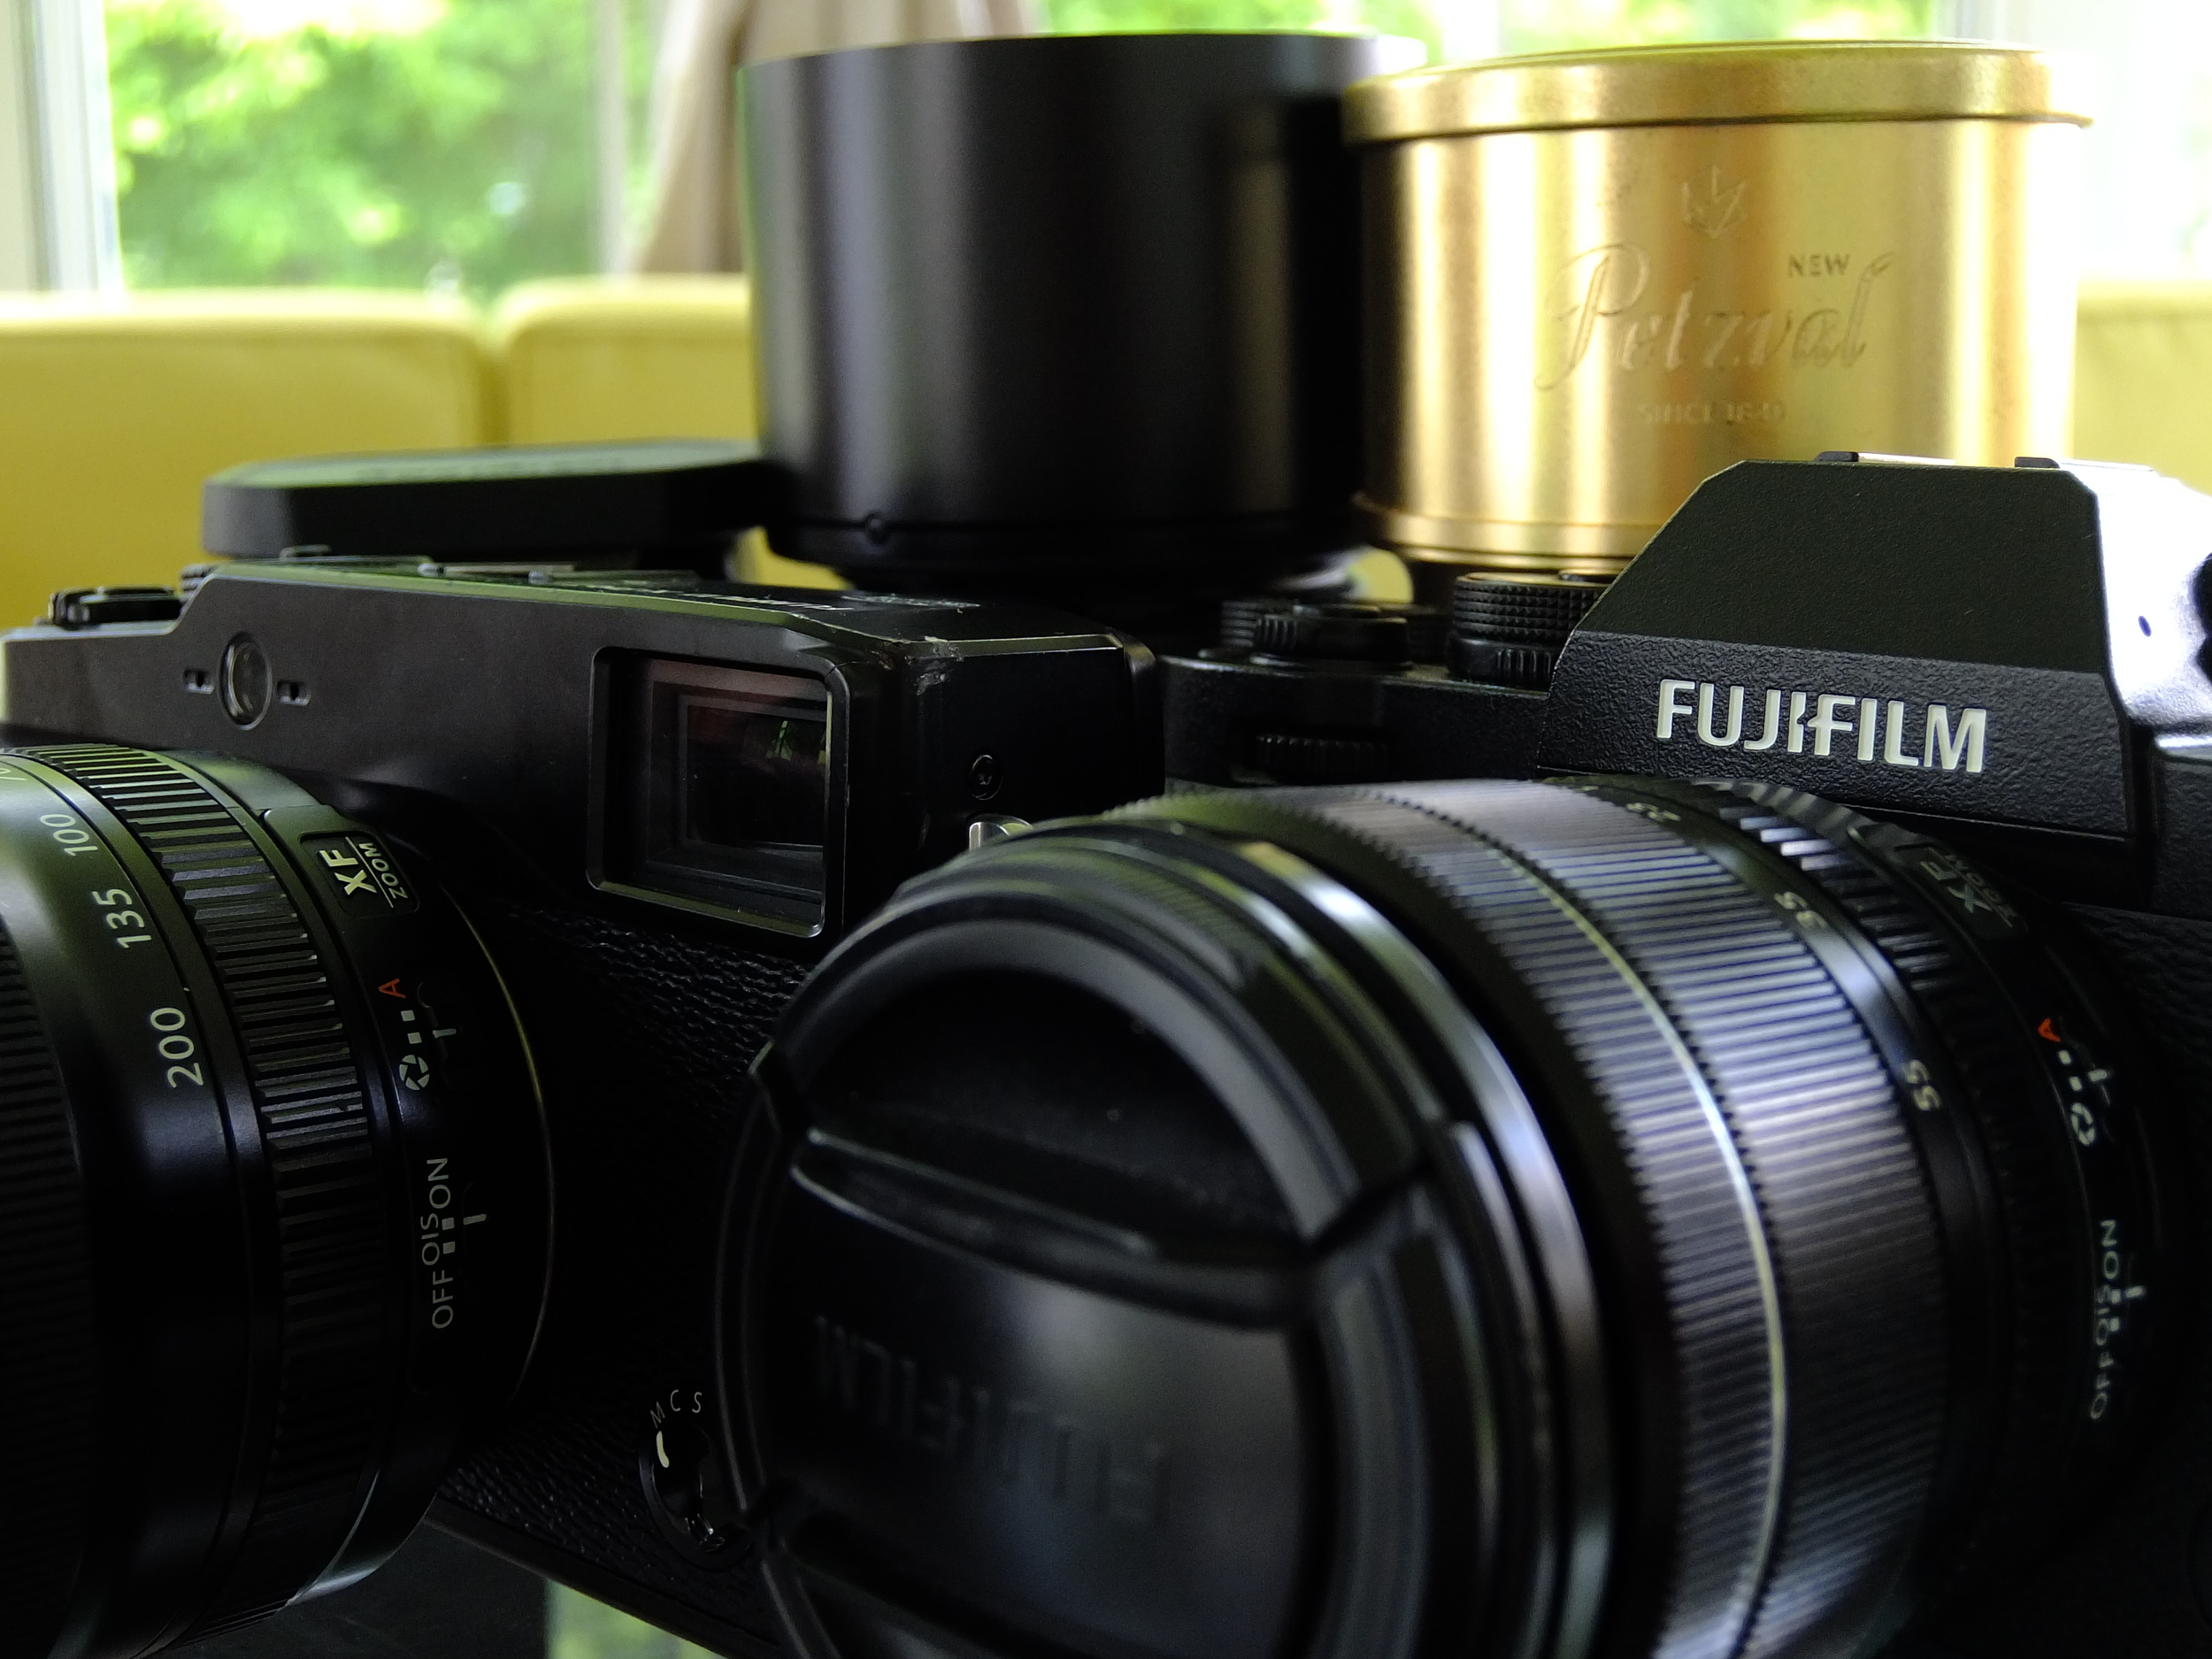 Fuji X series equipment, plus some specialty lenses. Wedding Photography, Albany and Saratoga, NY